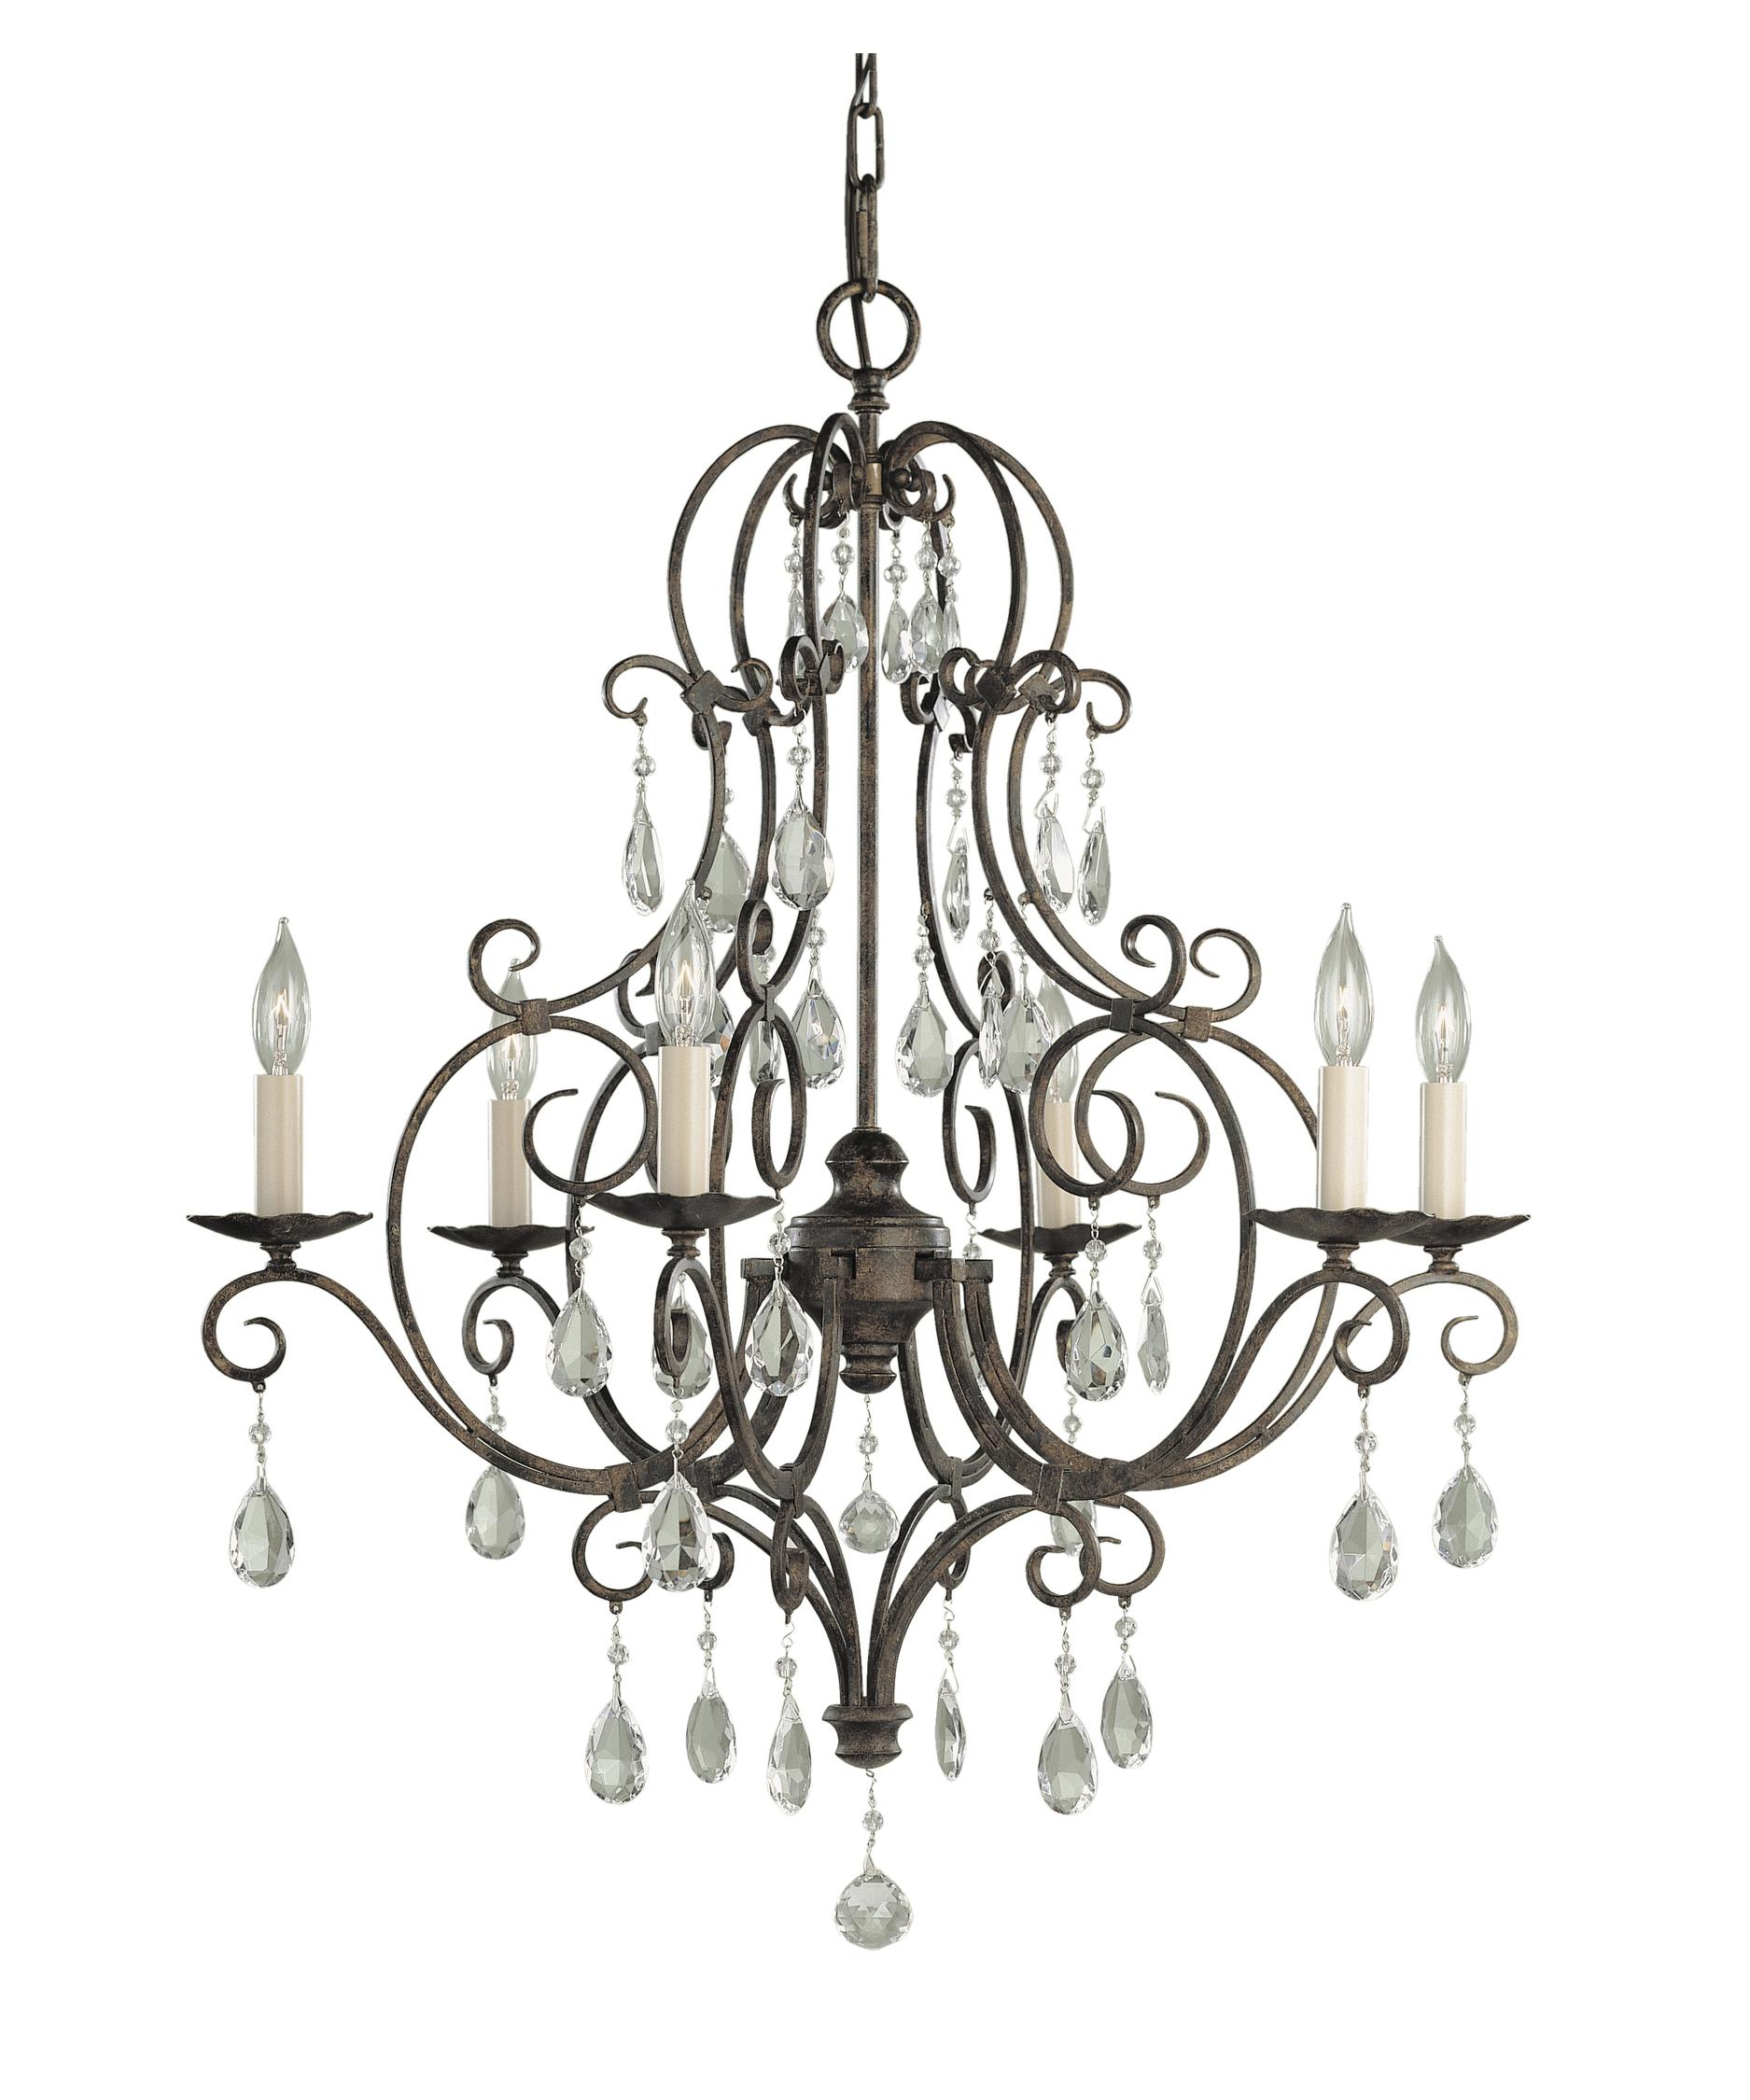 Murray Feiss Chateau 25 Inch Wide 6 Light Chandelier – Murray Feiss Chandeliers